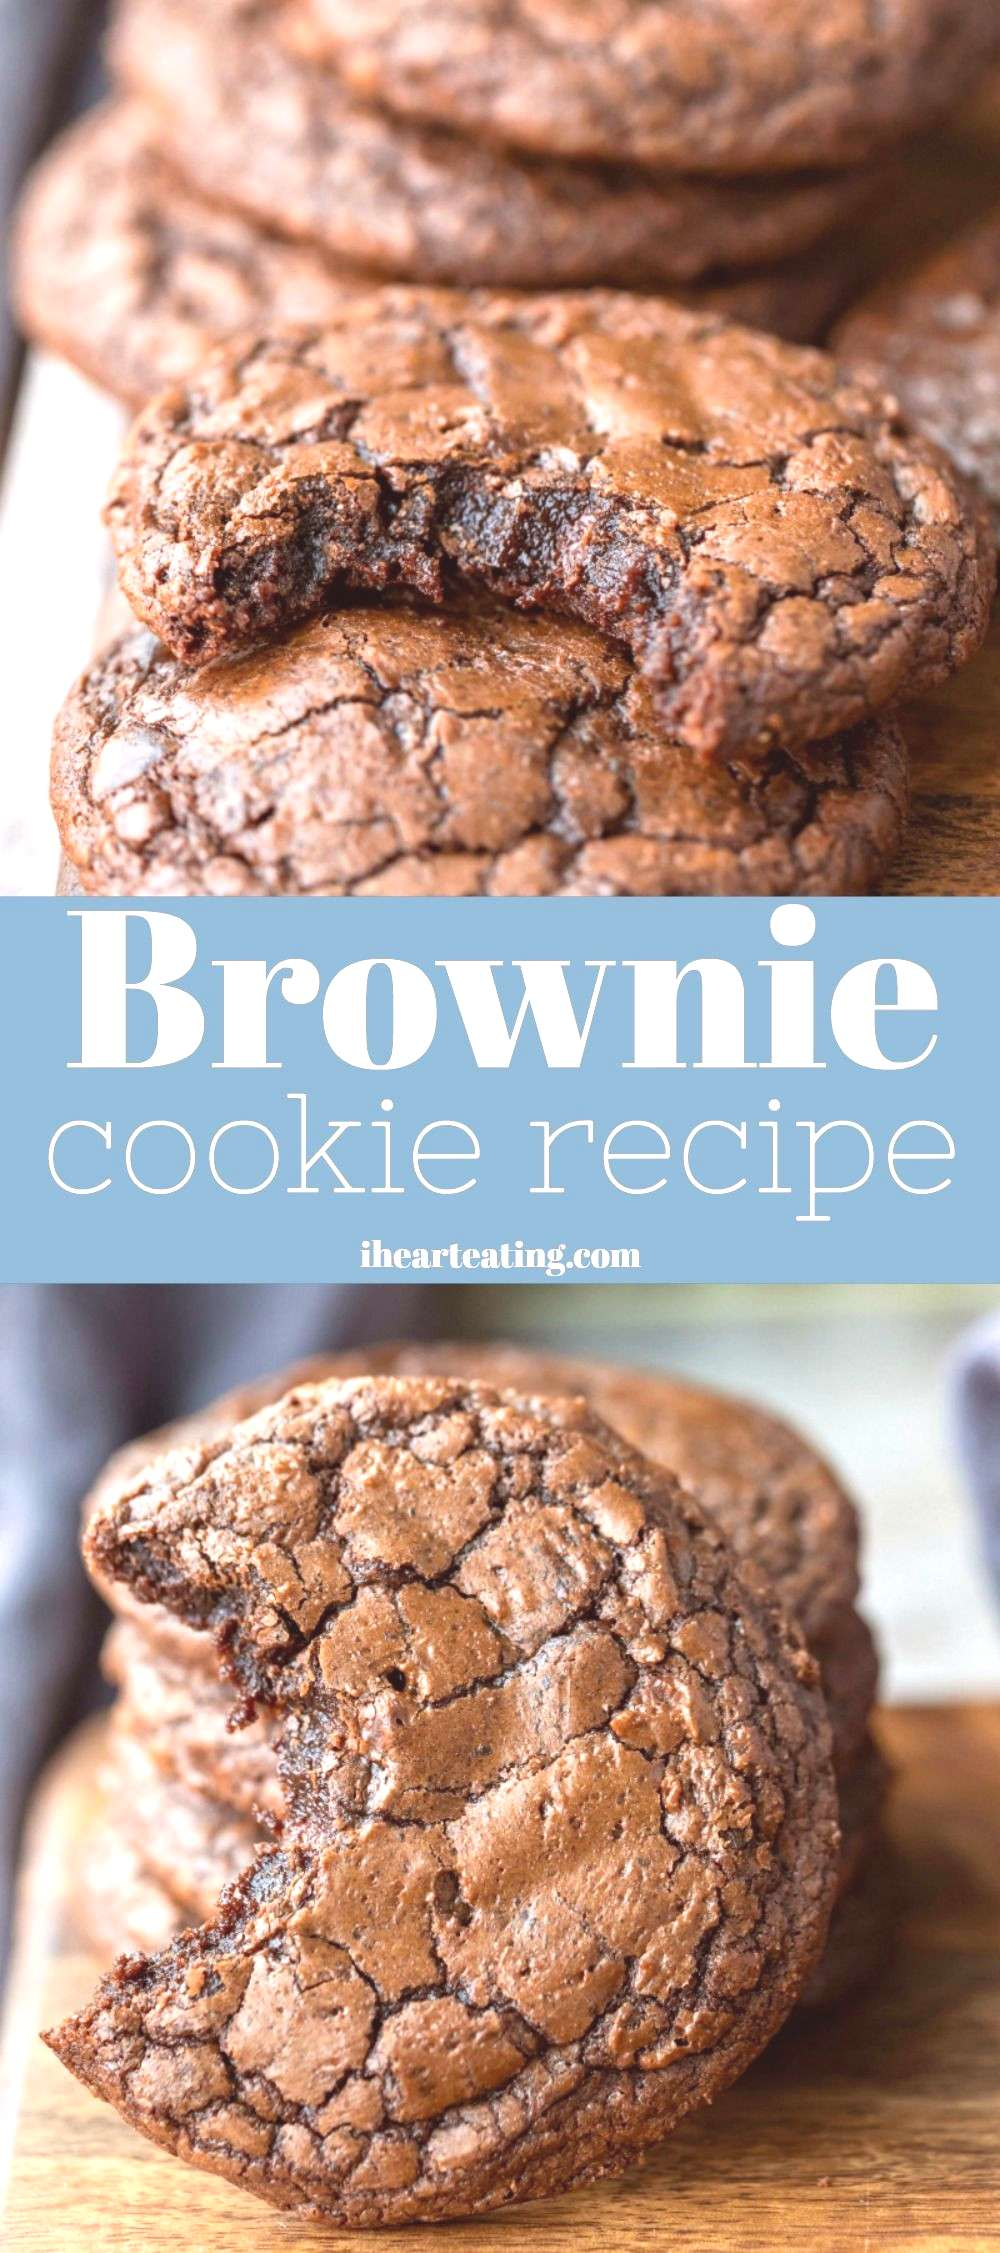 Family-Friendly Recipes Made with Love - I Heart Eating Ultimate brownie cookie recipe! Rich and fu